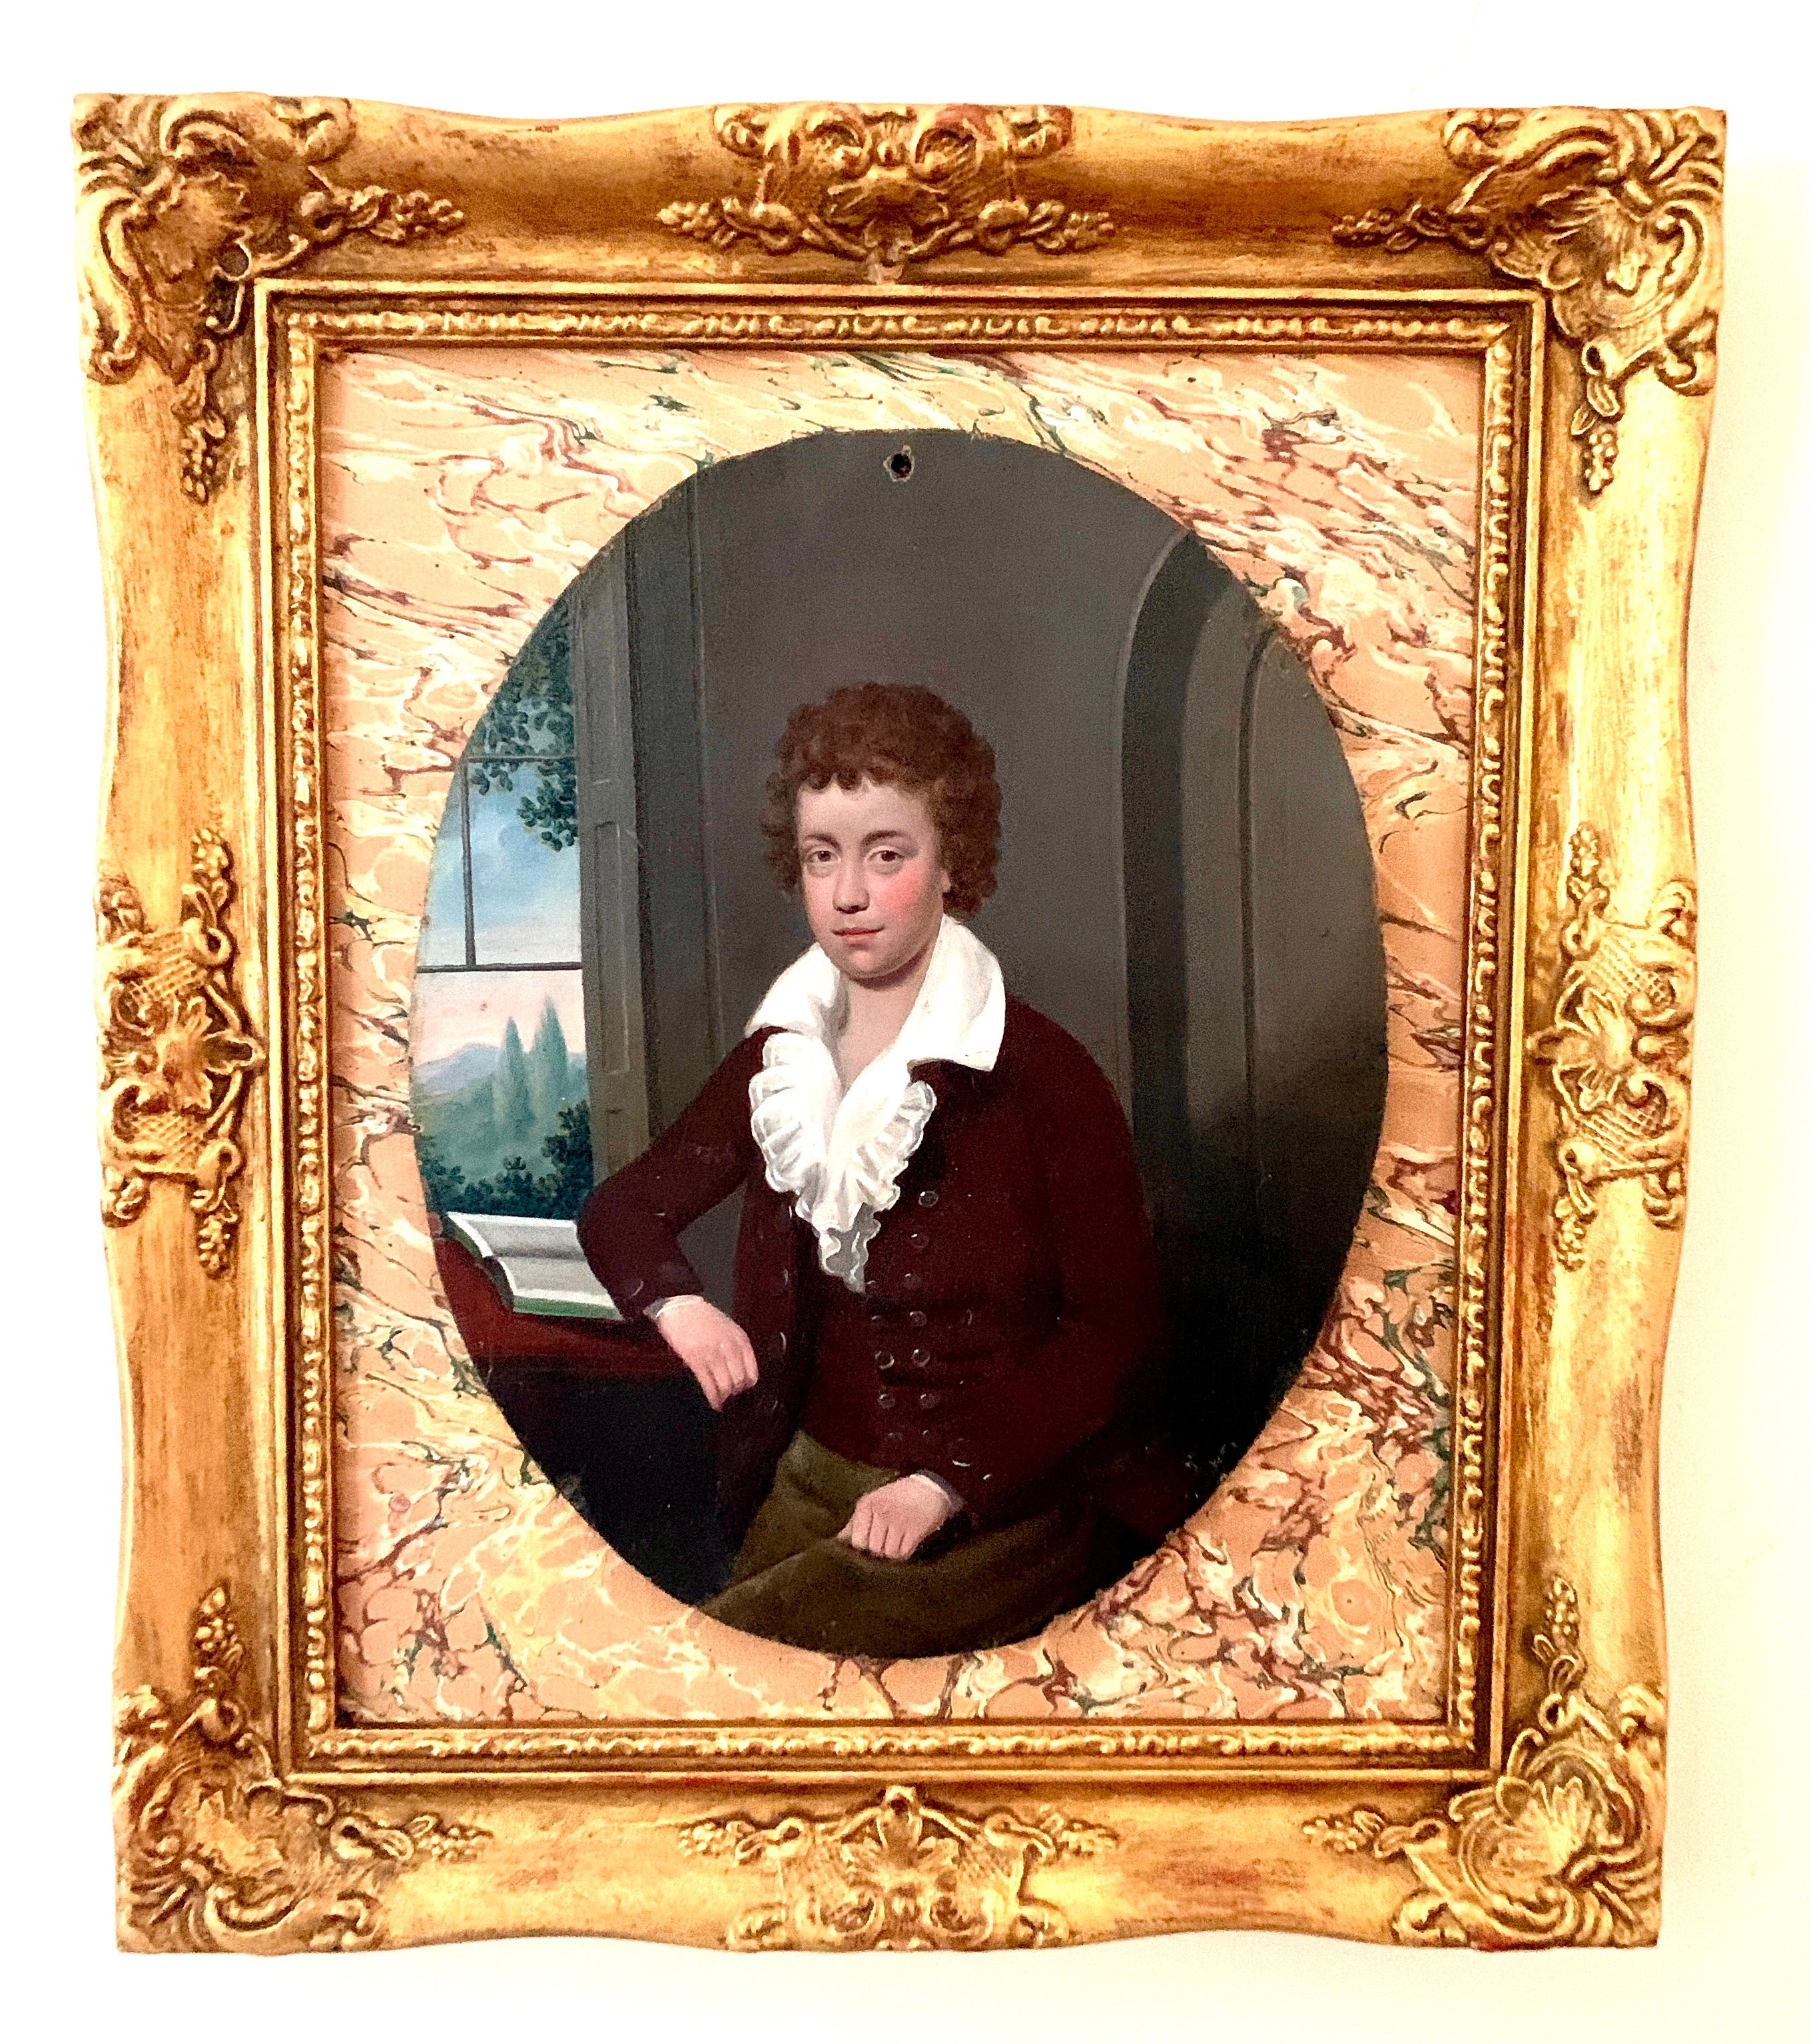 19th century Antique European portrait, young boy seated with book by landscape